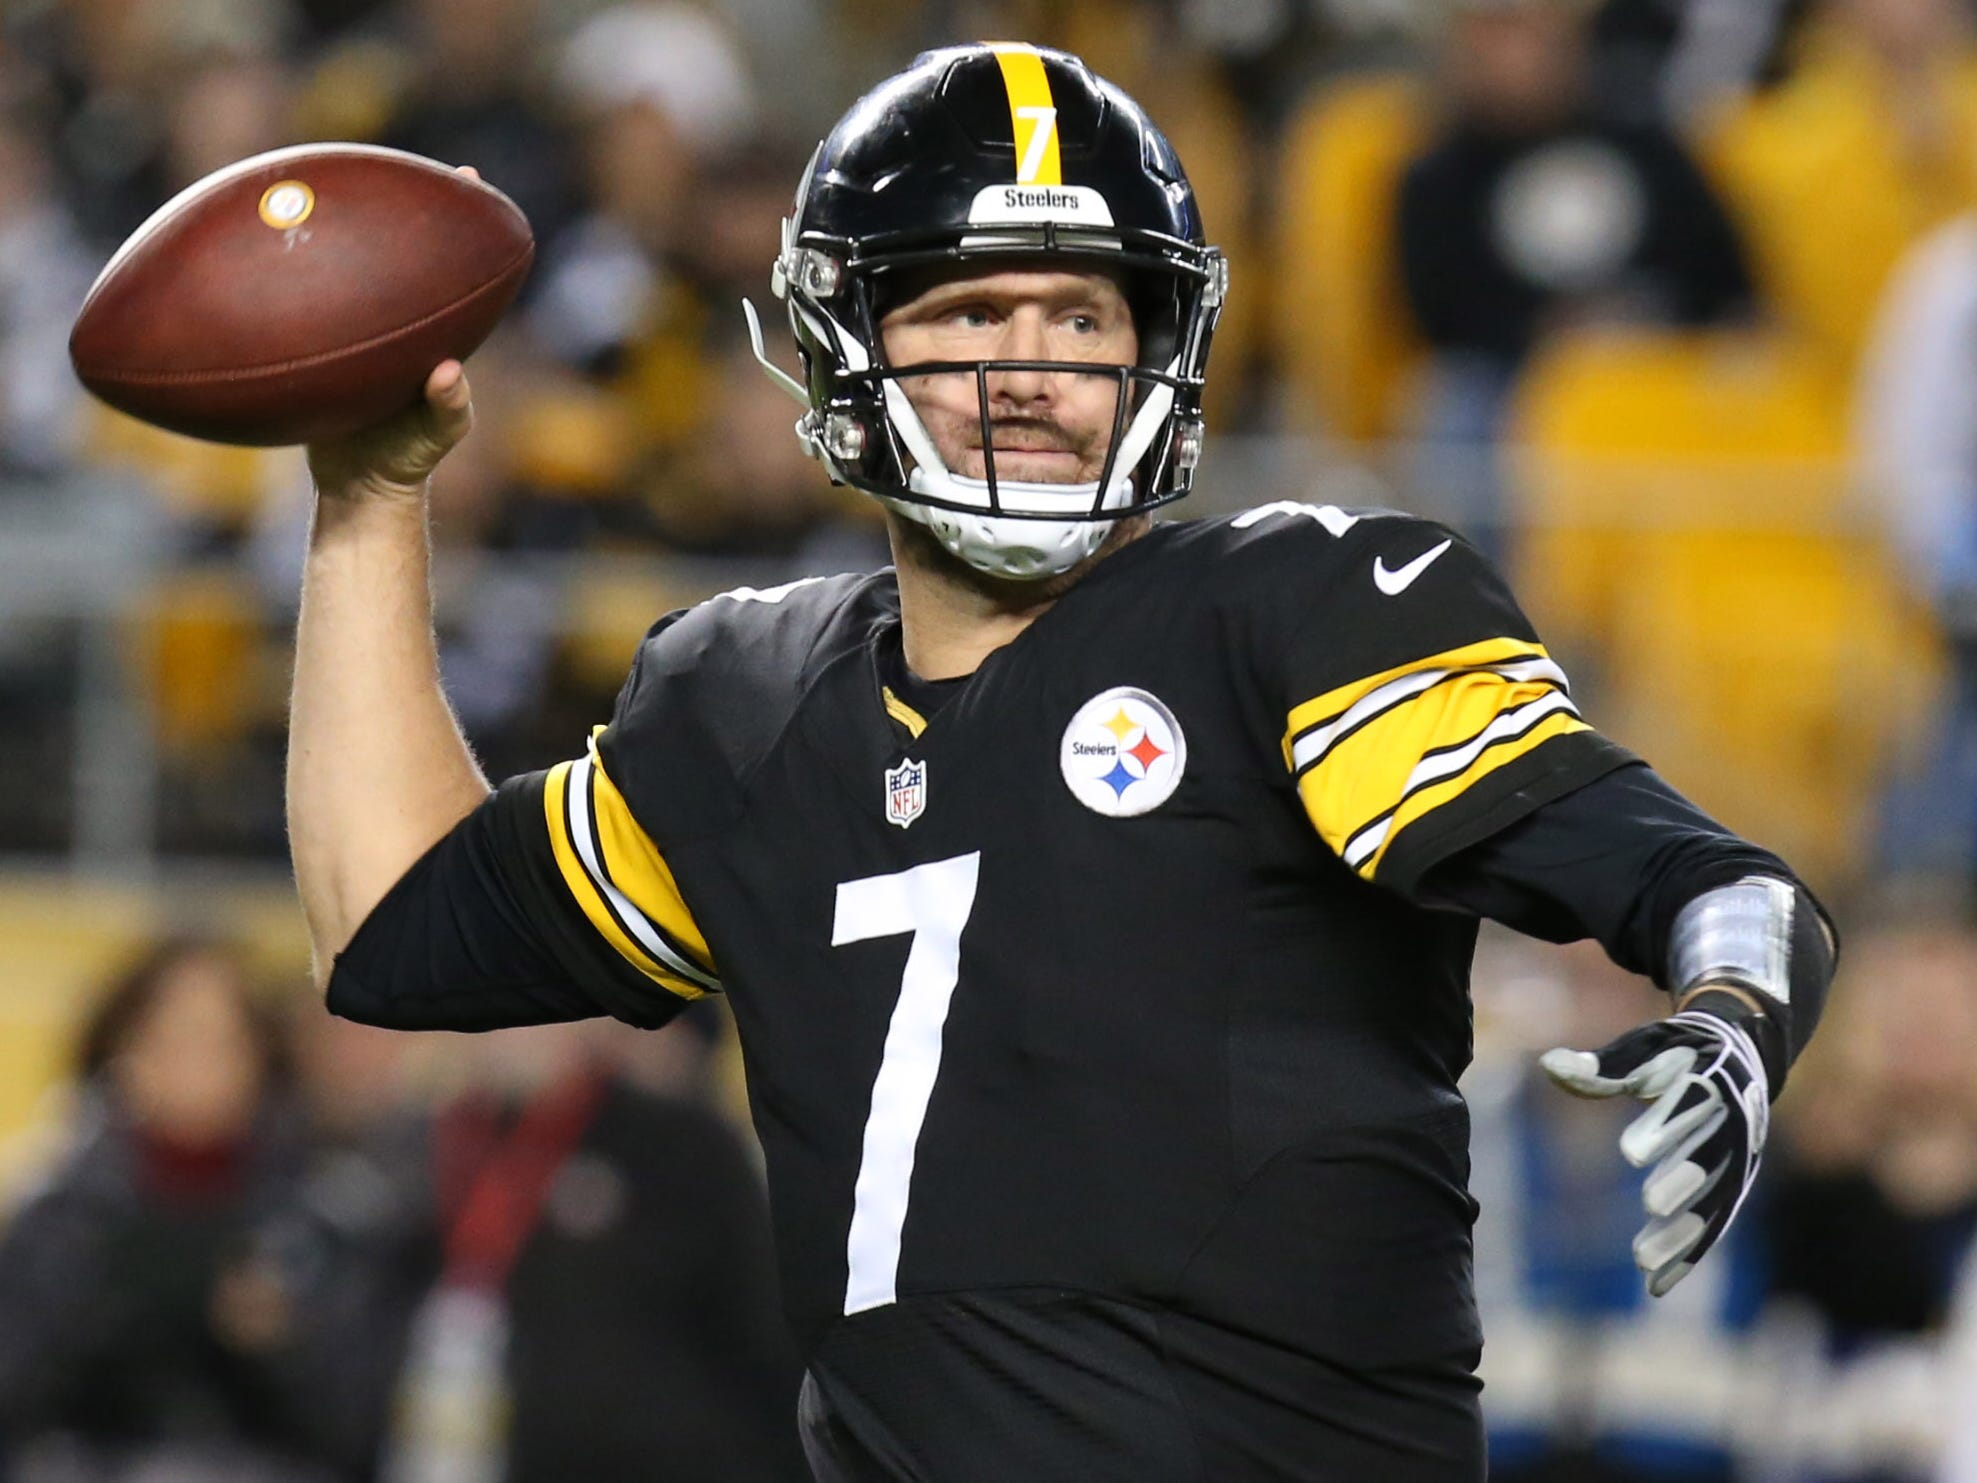 8. Steelers (6): Only Sam Darnold has more INTs than 13 for Ben Roethlisberger, who also missed a lot of open guys Sunday. Rip yourself this time, Big Ben.